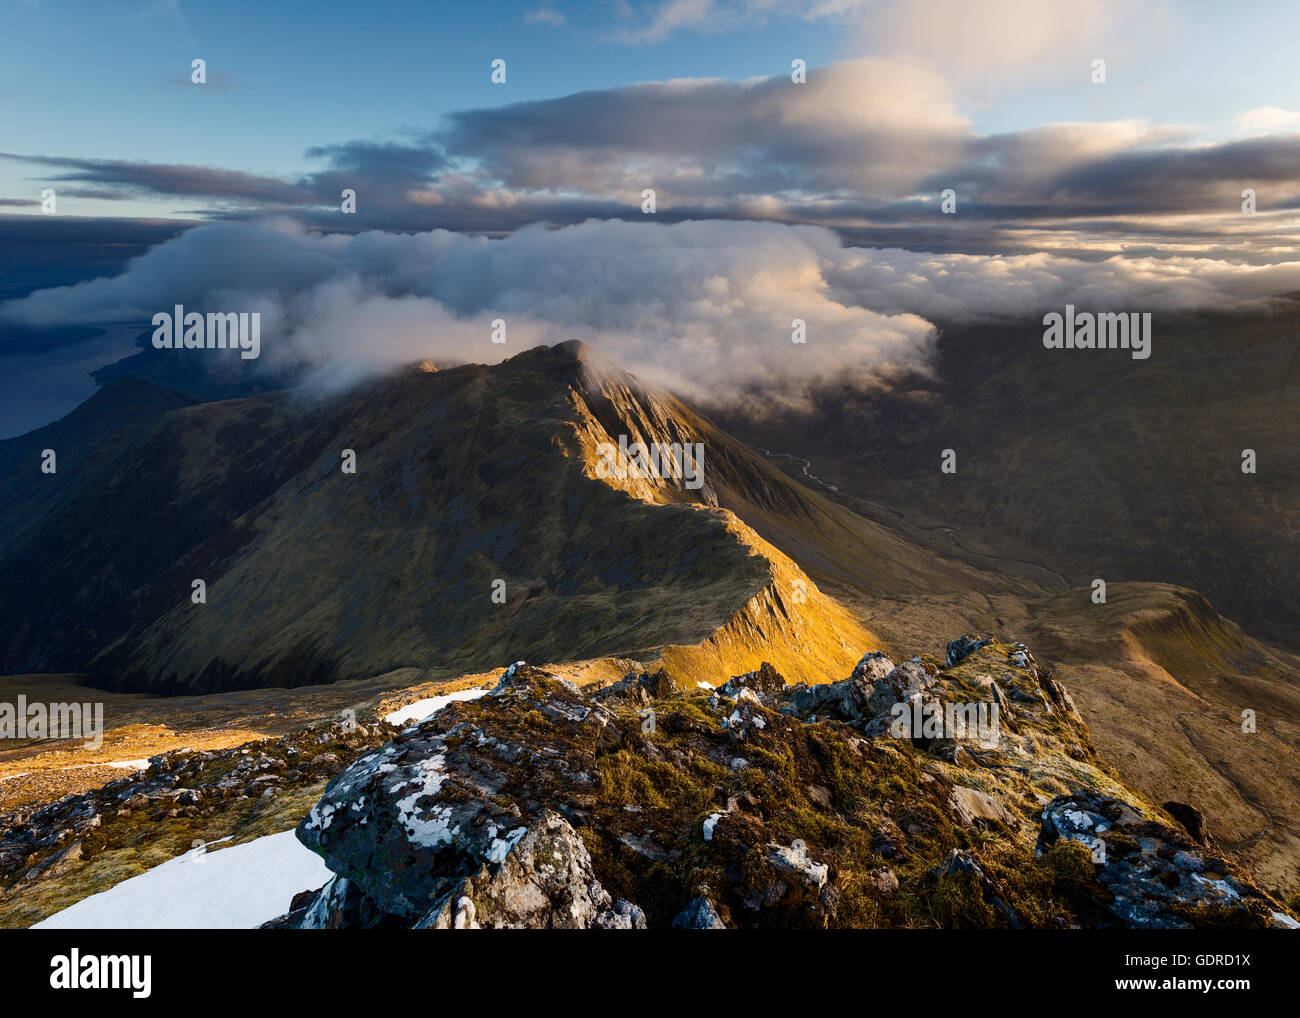 Clouds coming in over the summit of a sidelit Sgur nan Saighead at sunrise - Stock Image